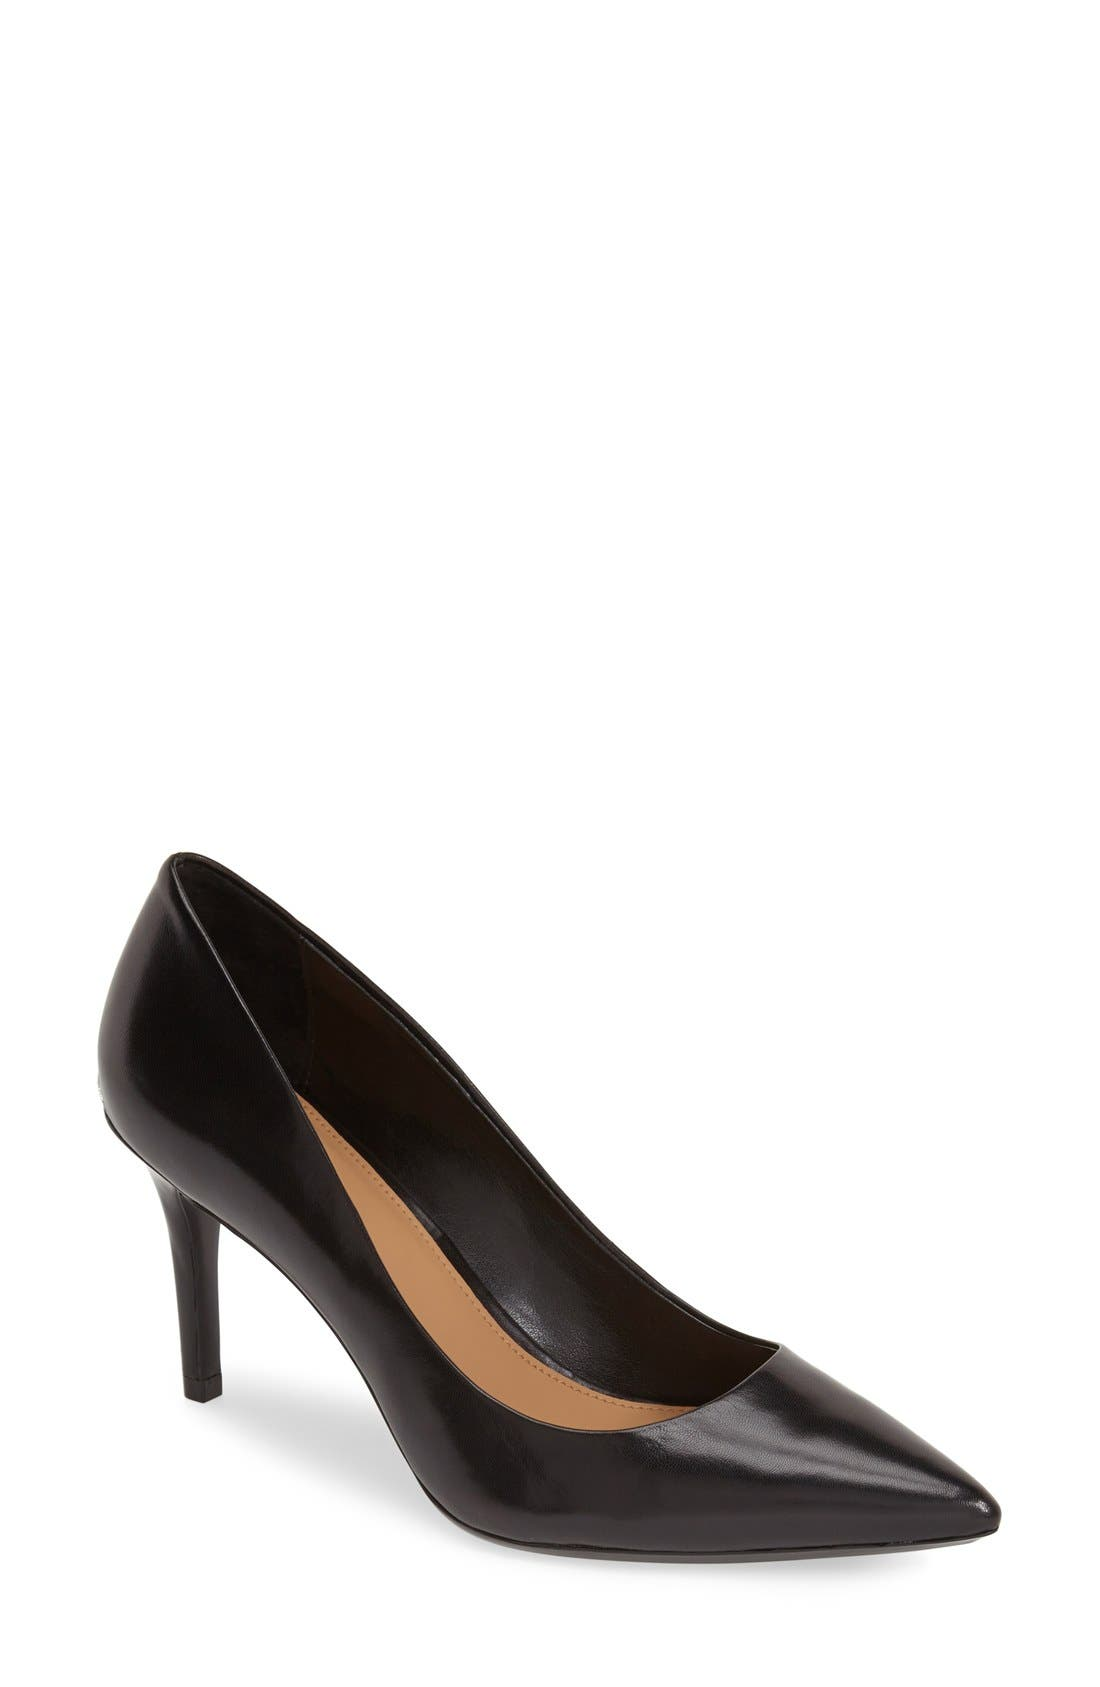 'Gayle' Pointy Toe Pump,                             Main thumbnail 1, color,                             BLACK LEATHER